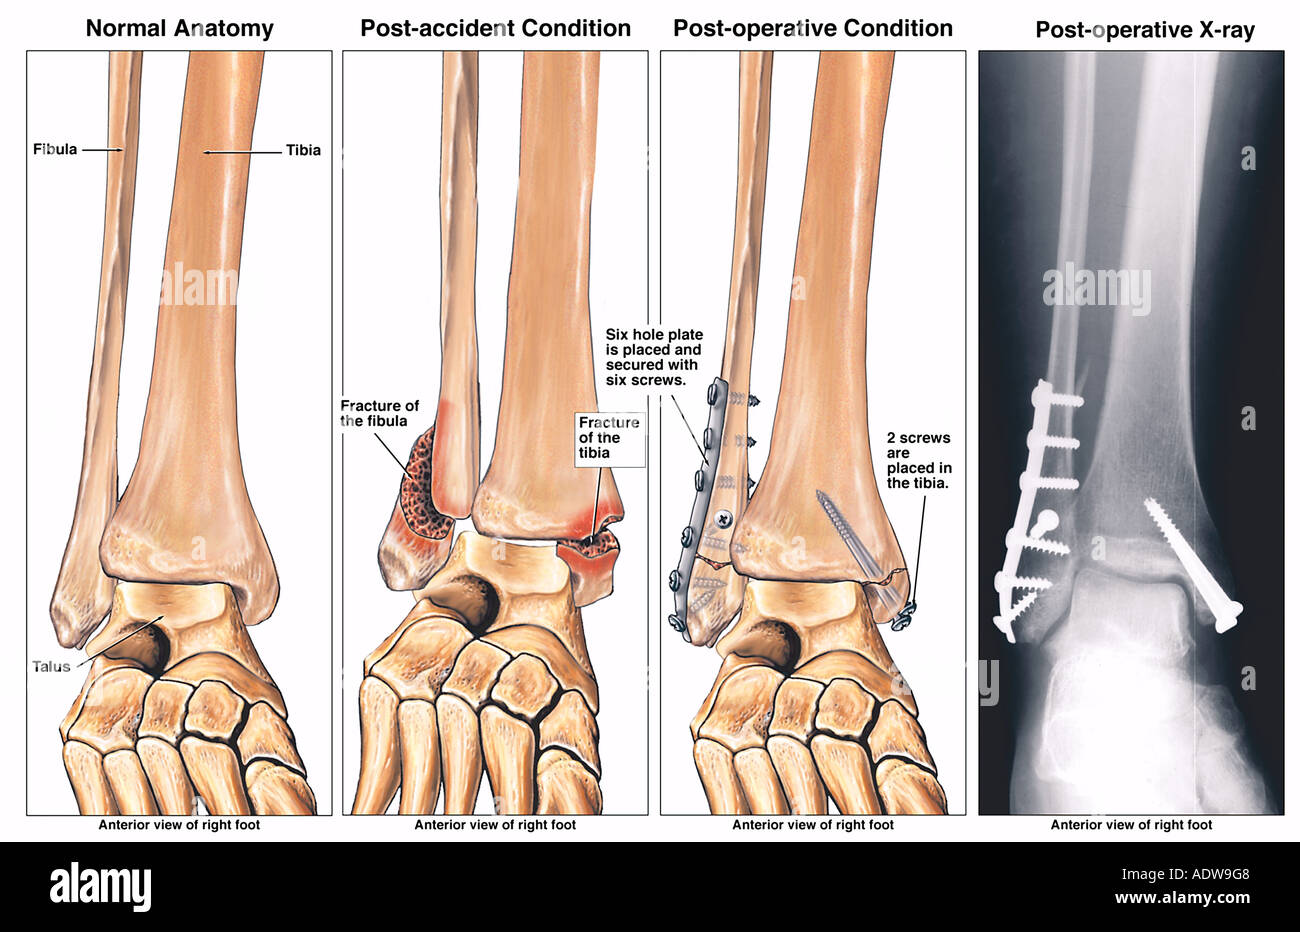 Bimalleolar Fractured Ankle and Subsequent Fixation Surgery with Plates and Screws - Stock Image